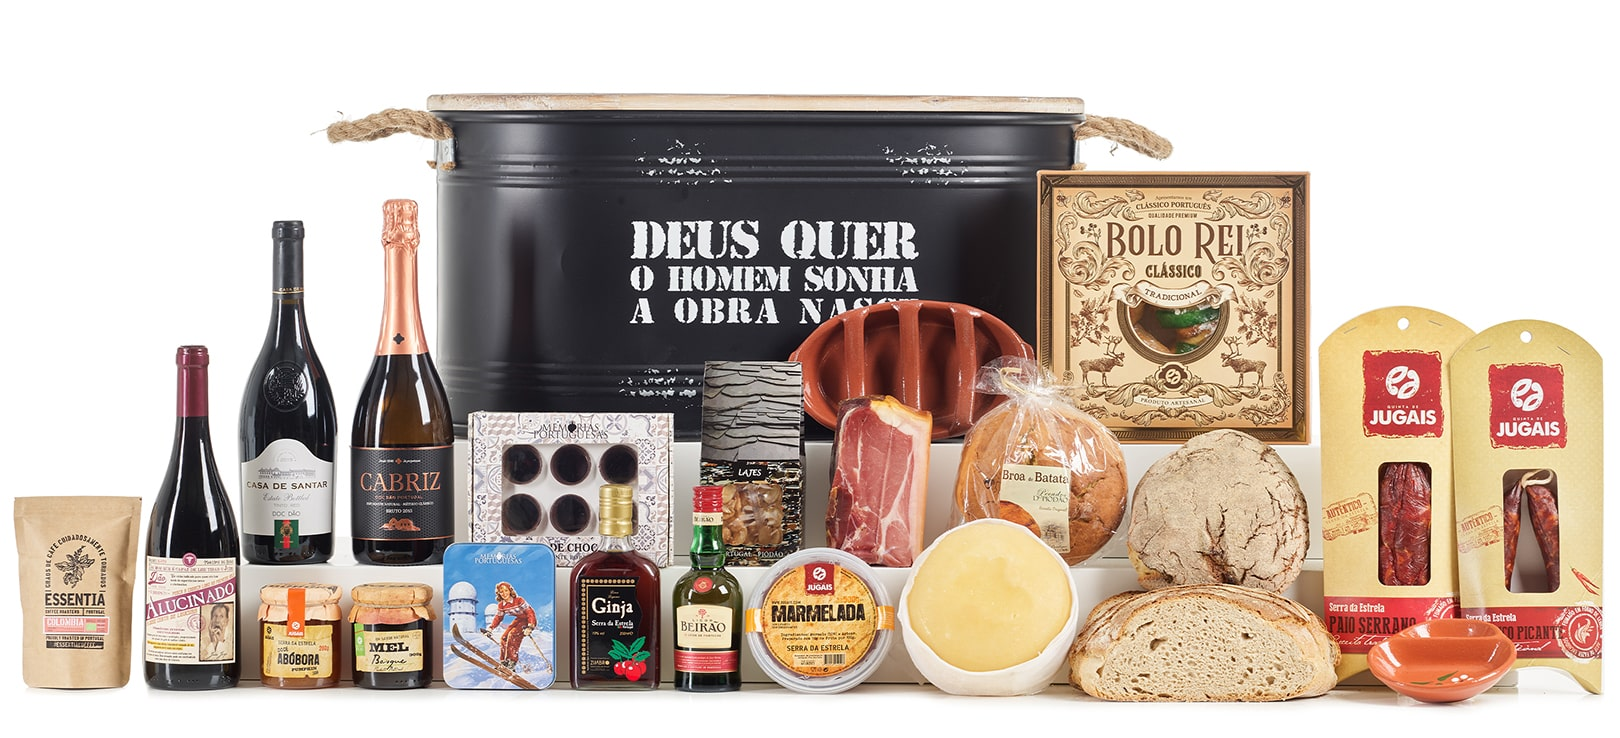 Beiras Christmas Hampers List